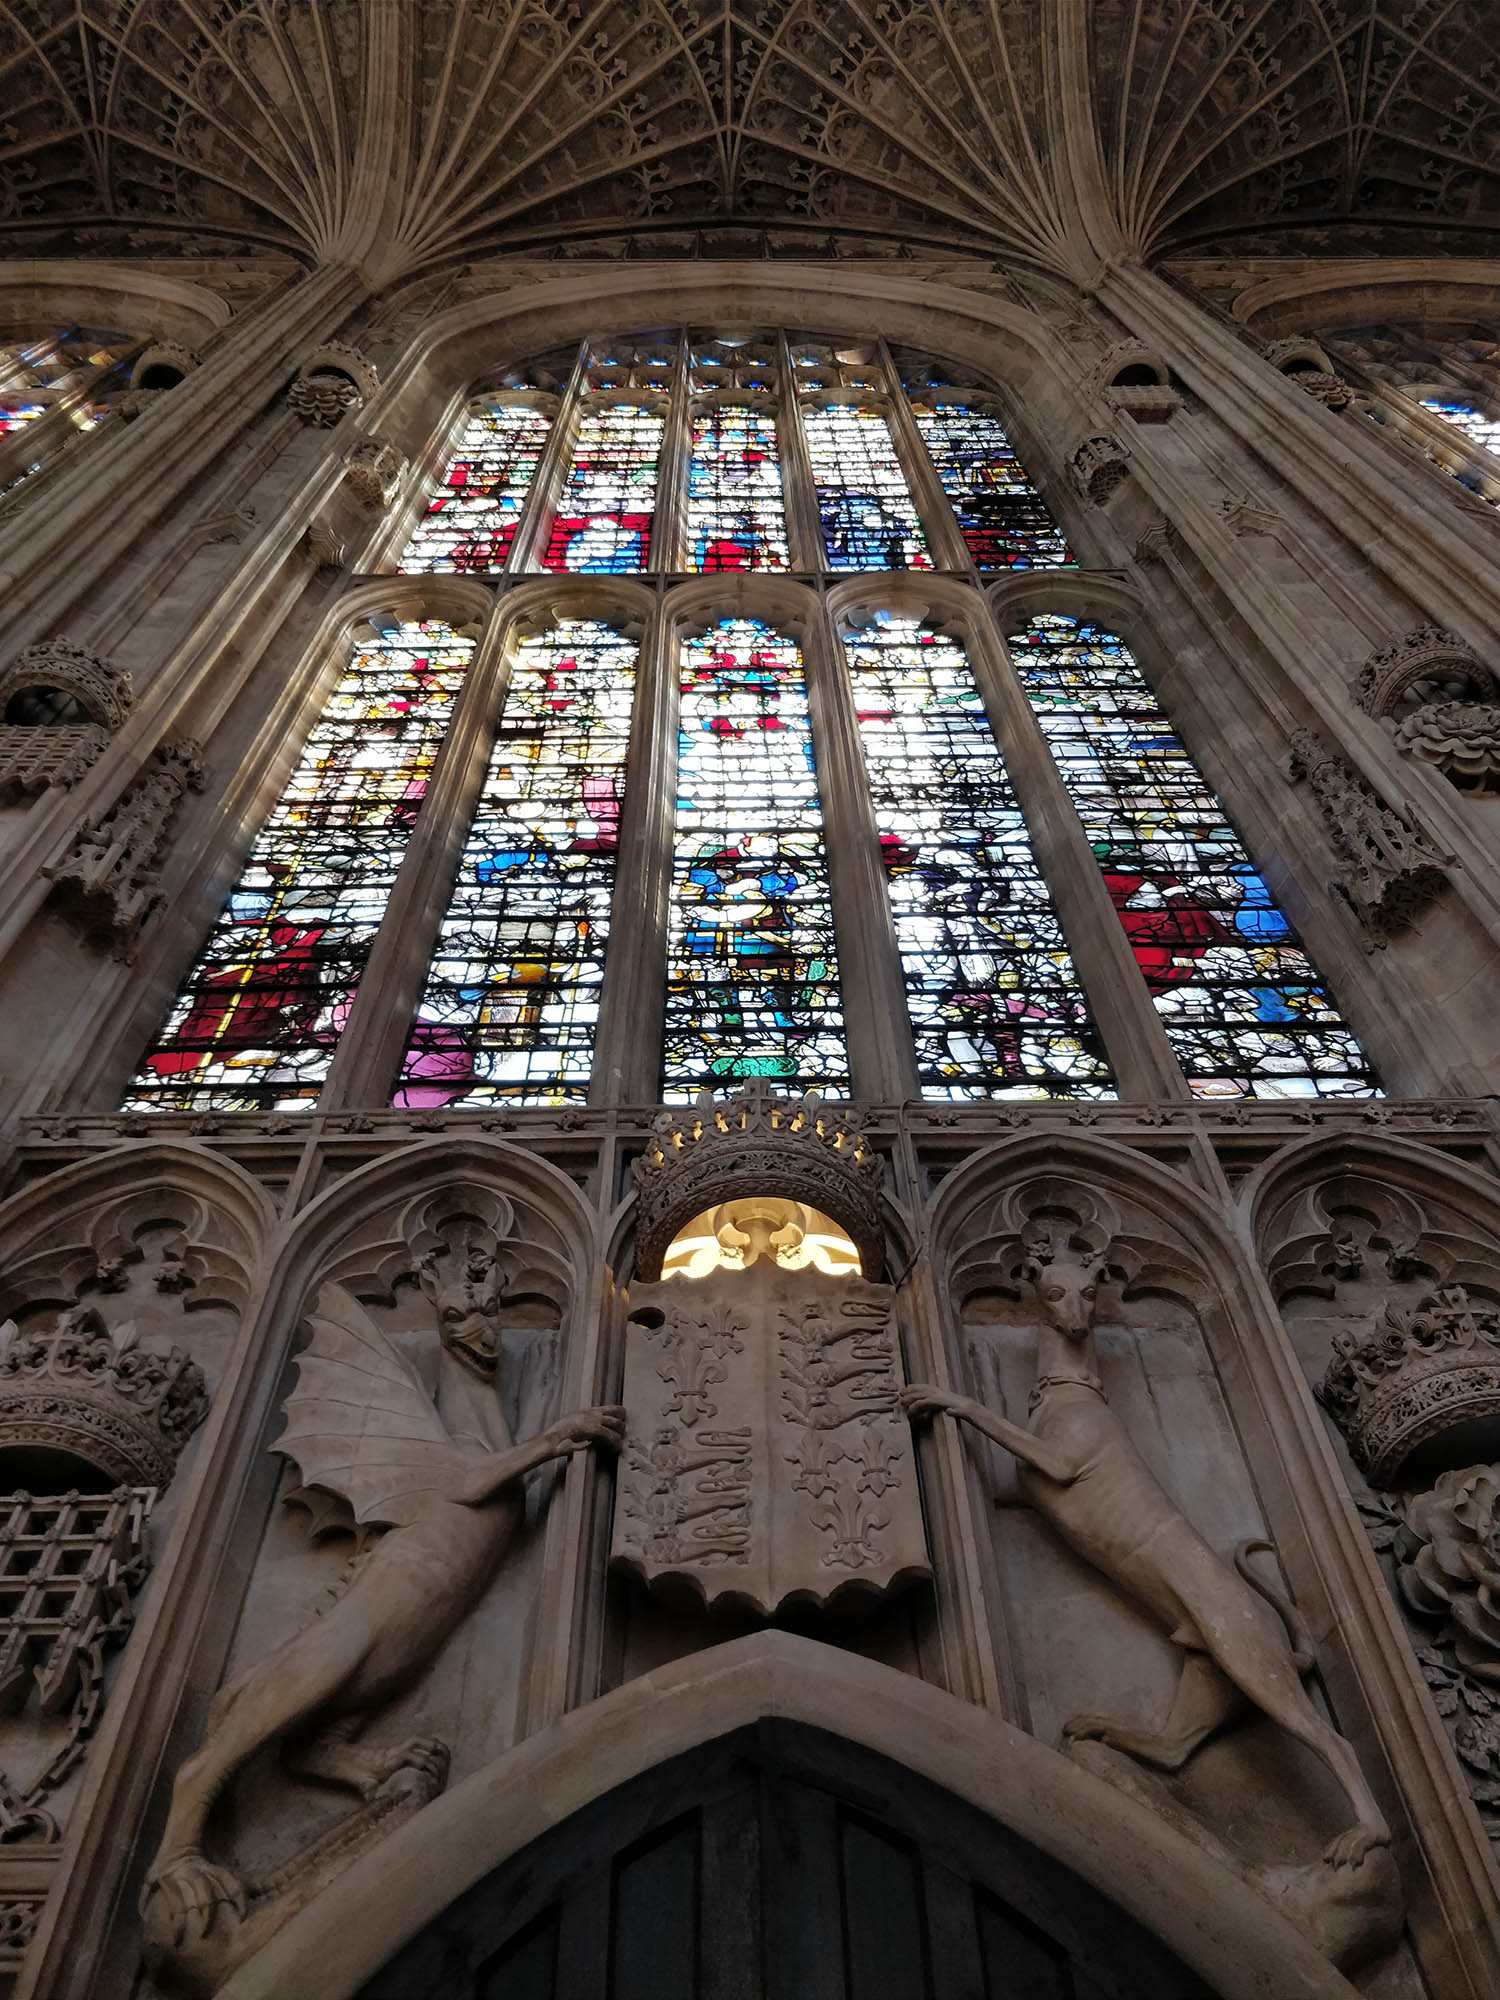 stained-glass-windows-kings-college-chapel.jpg